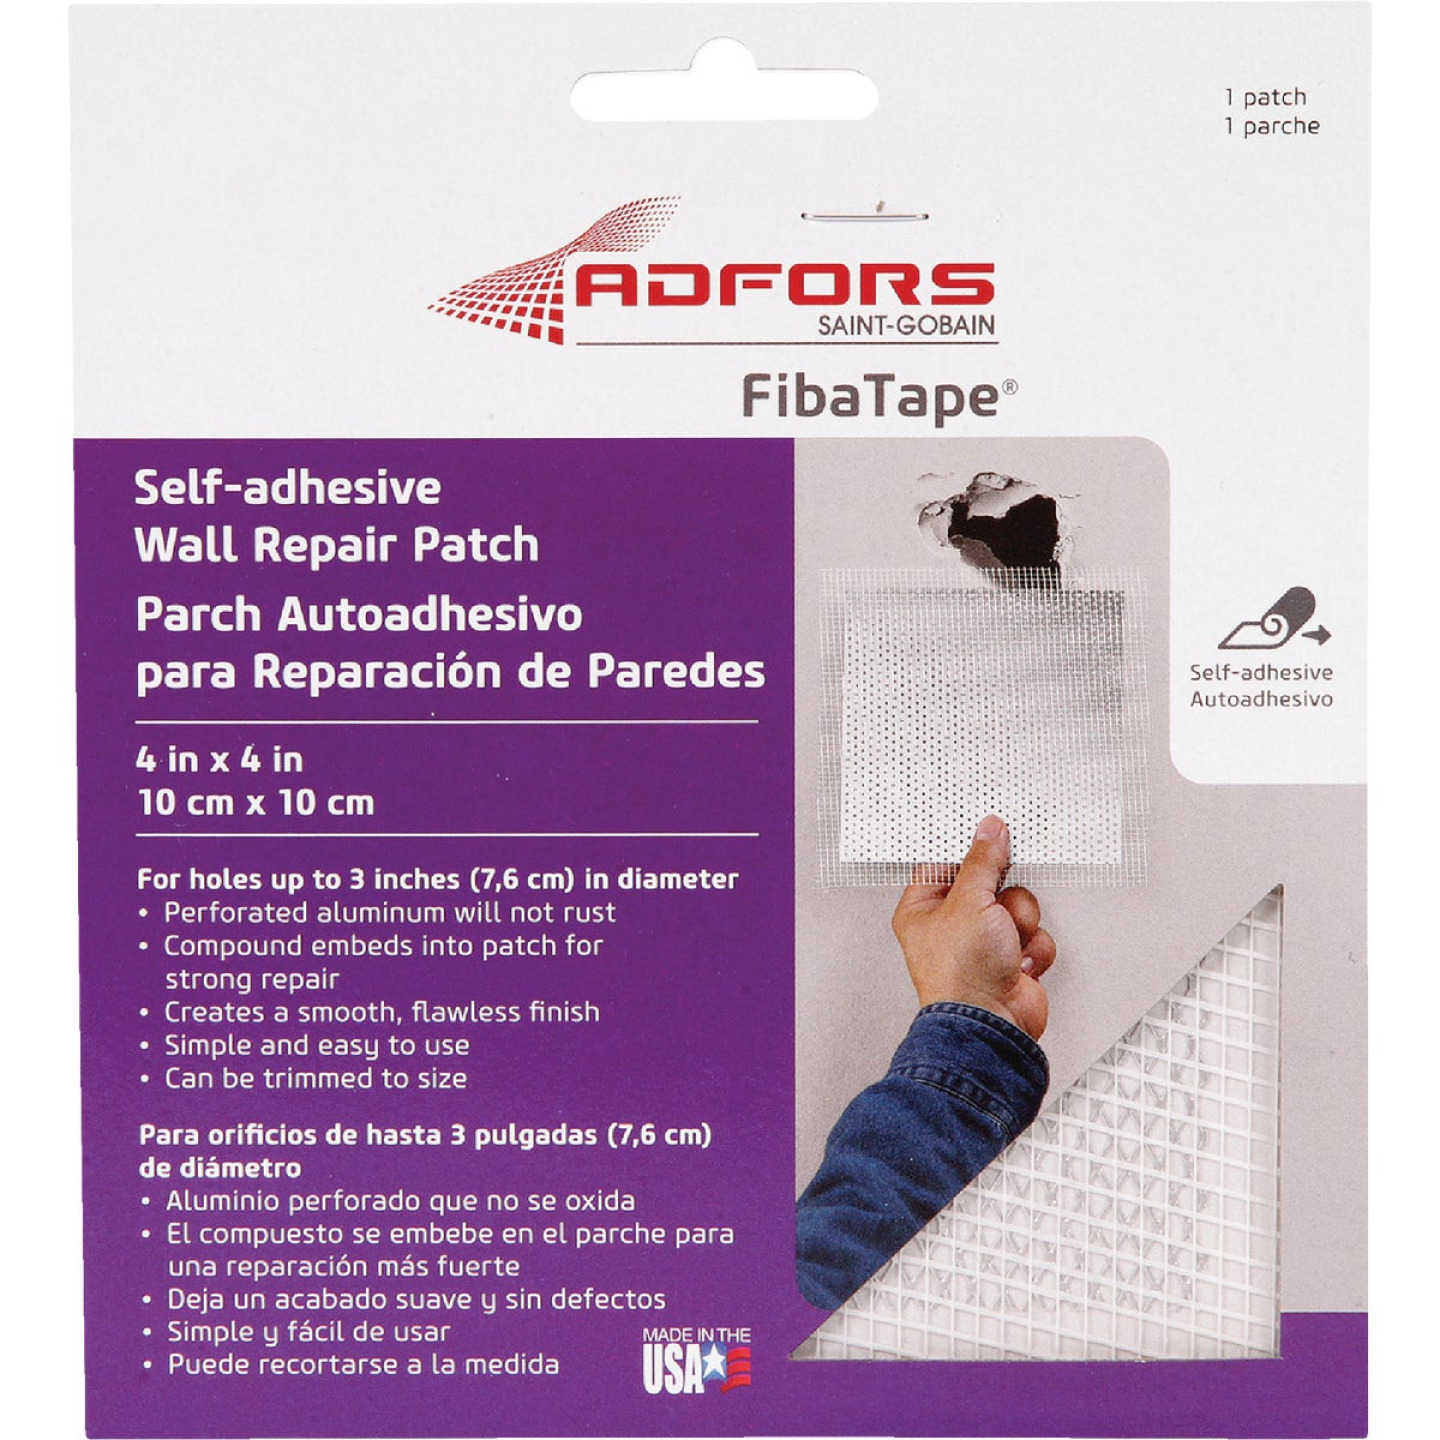 FibaTape 4 In. x 4 In. Wall & Ceiling Self-Adhesive Drywall Patch Image 1